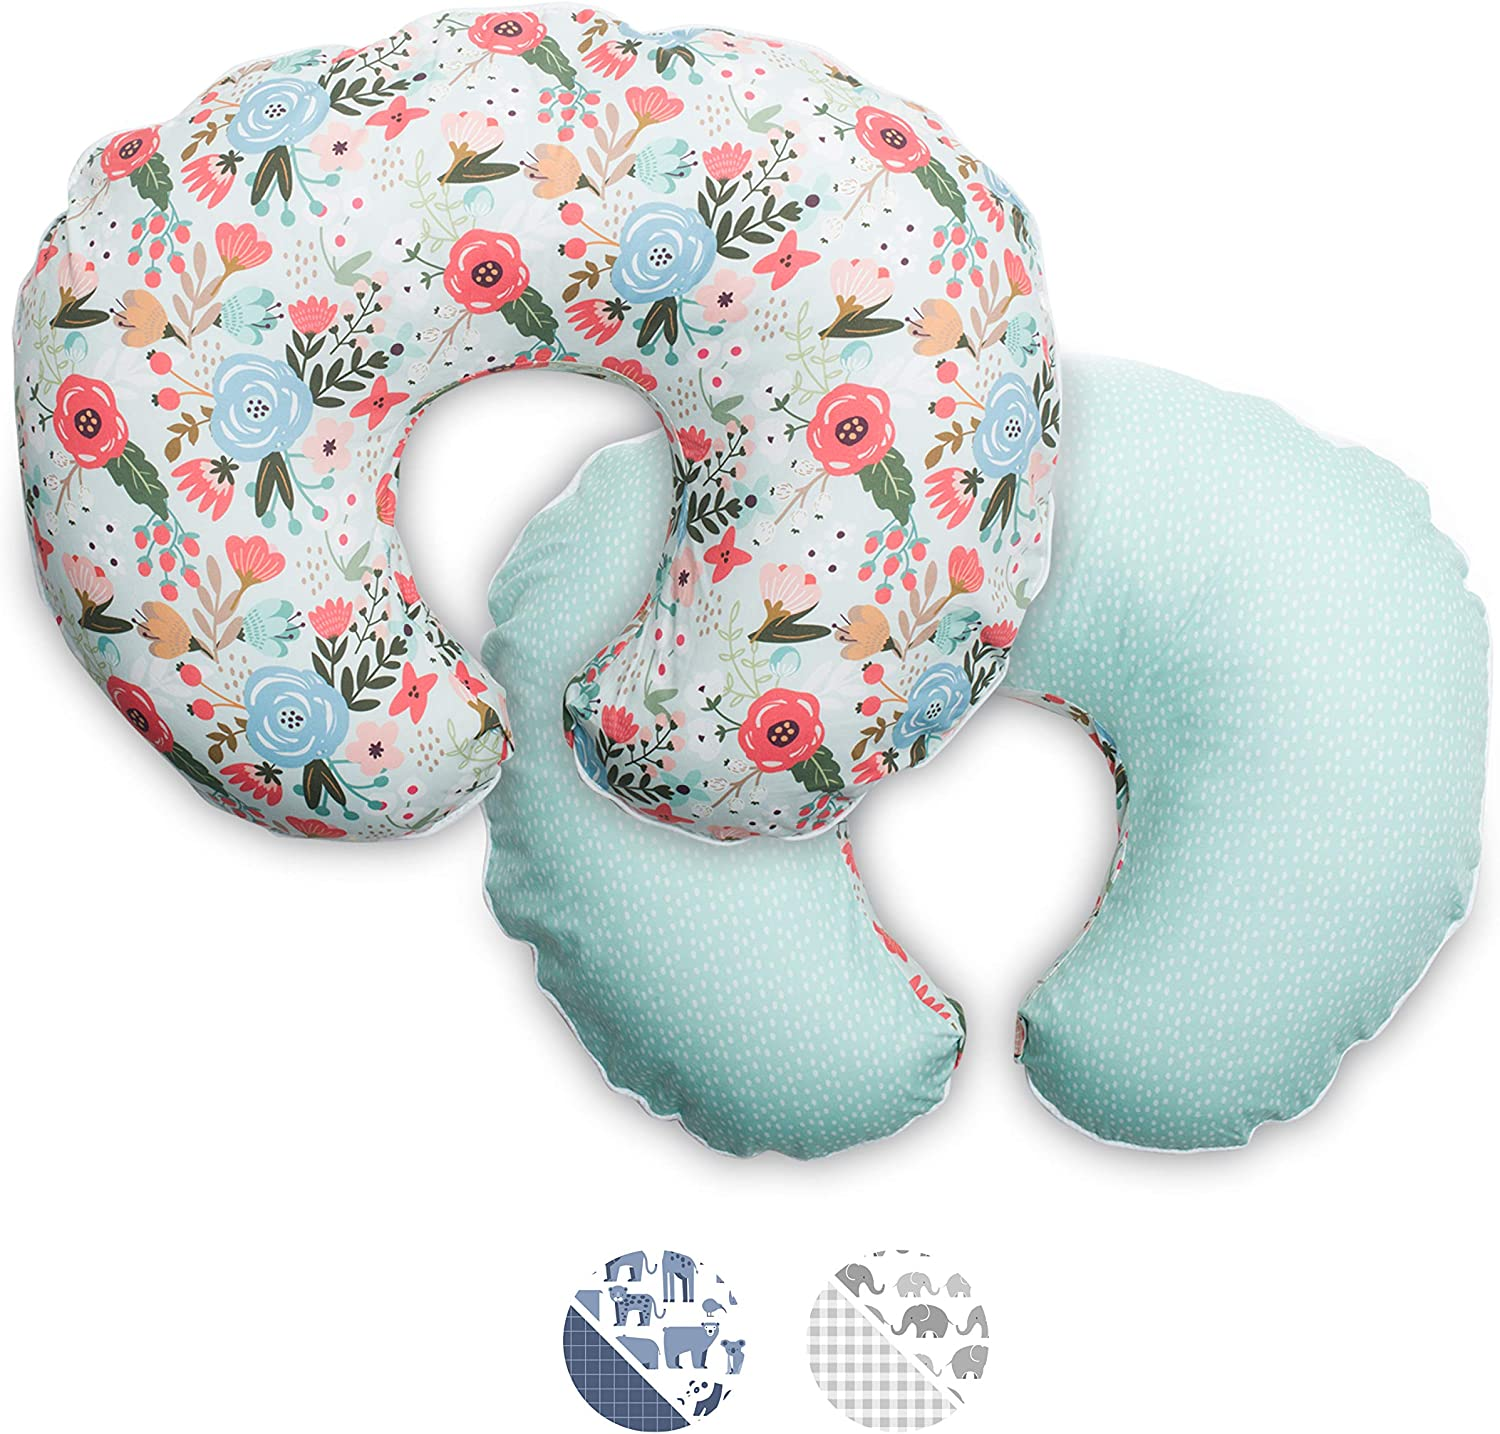 Boppy Premium Pillow Cover, Mint Floral